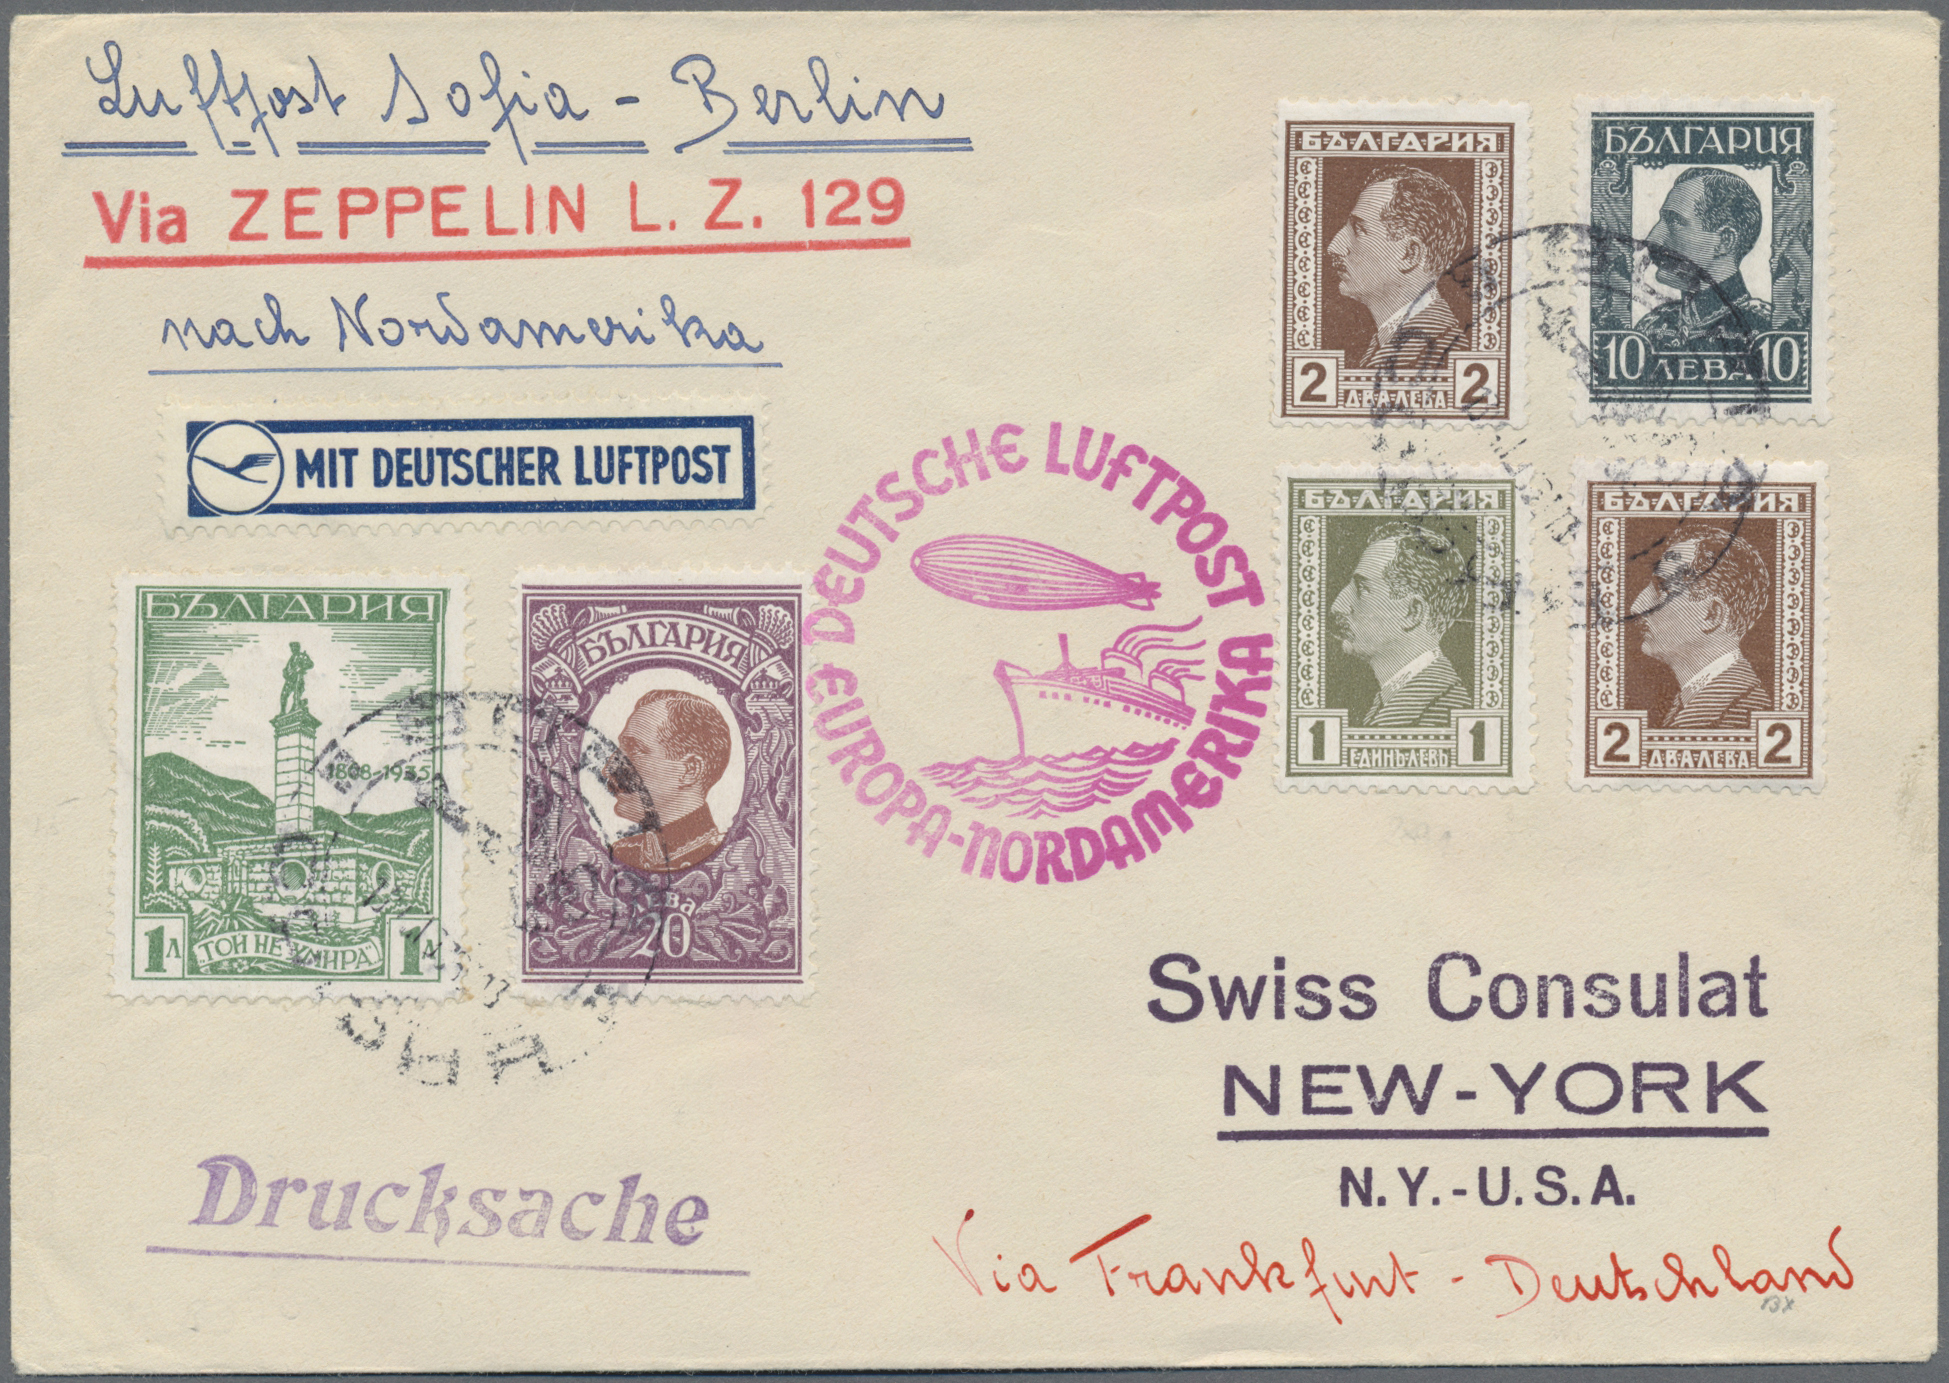 Lot 13394 - zeppelinpost europa  -  Auktionshaus Christoph Gärtner GmbH & Co. KG Sale #47 Single lots: Asia, Thematics, Overseas, Europe